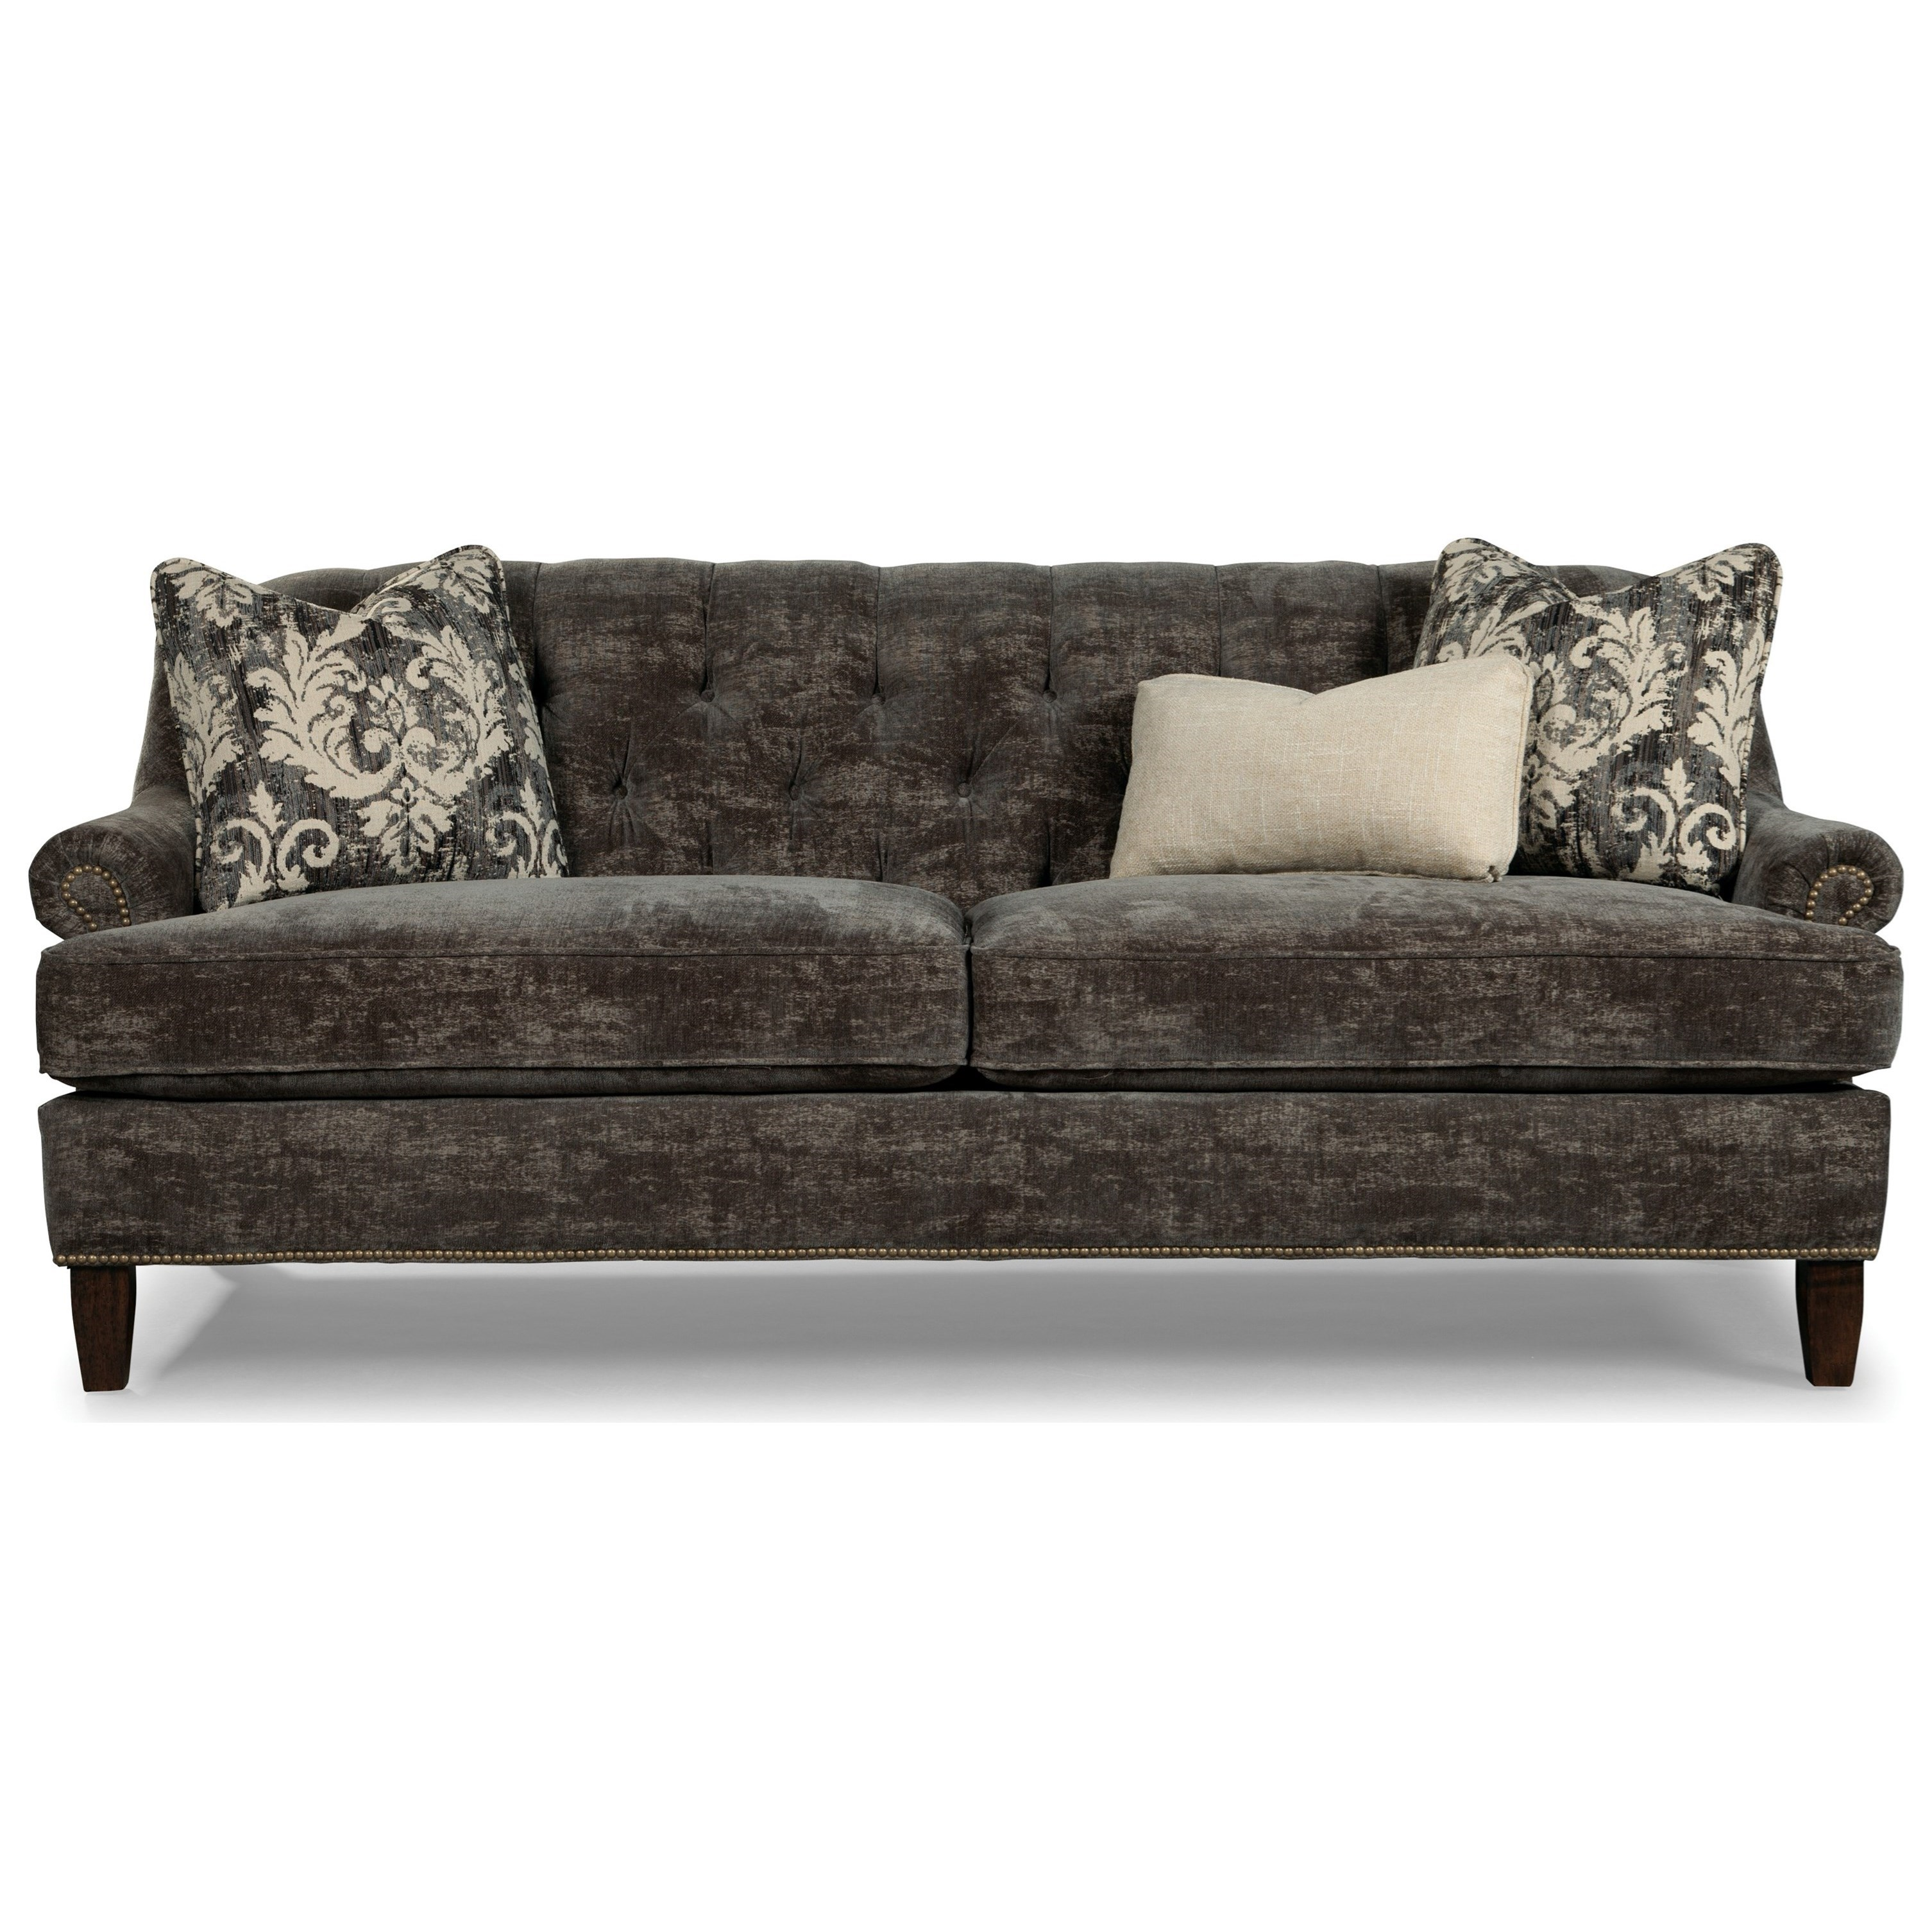 Paris Transitional Tufted White Leather Sectional Sofa: Rachael Ray Home By Craftmaster Upstate Transitional